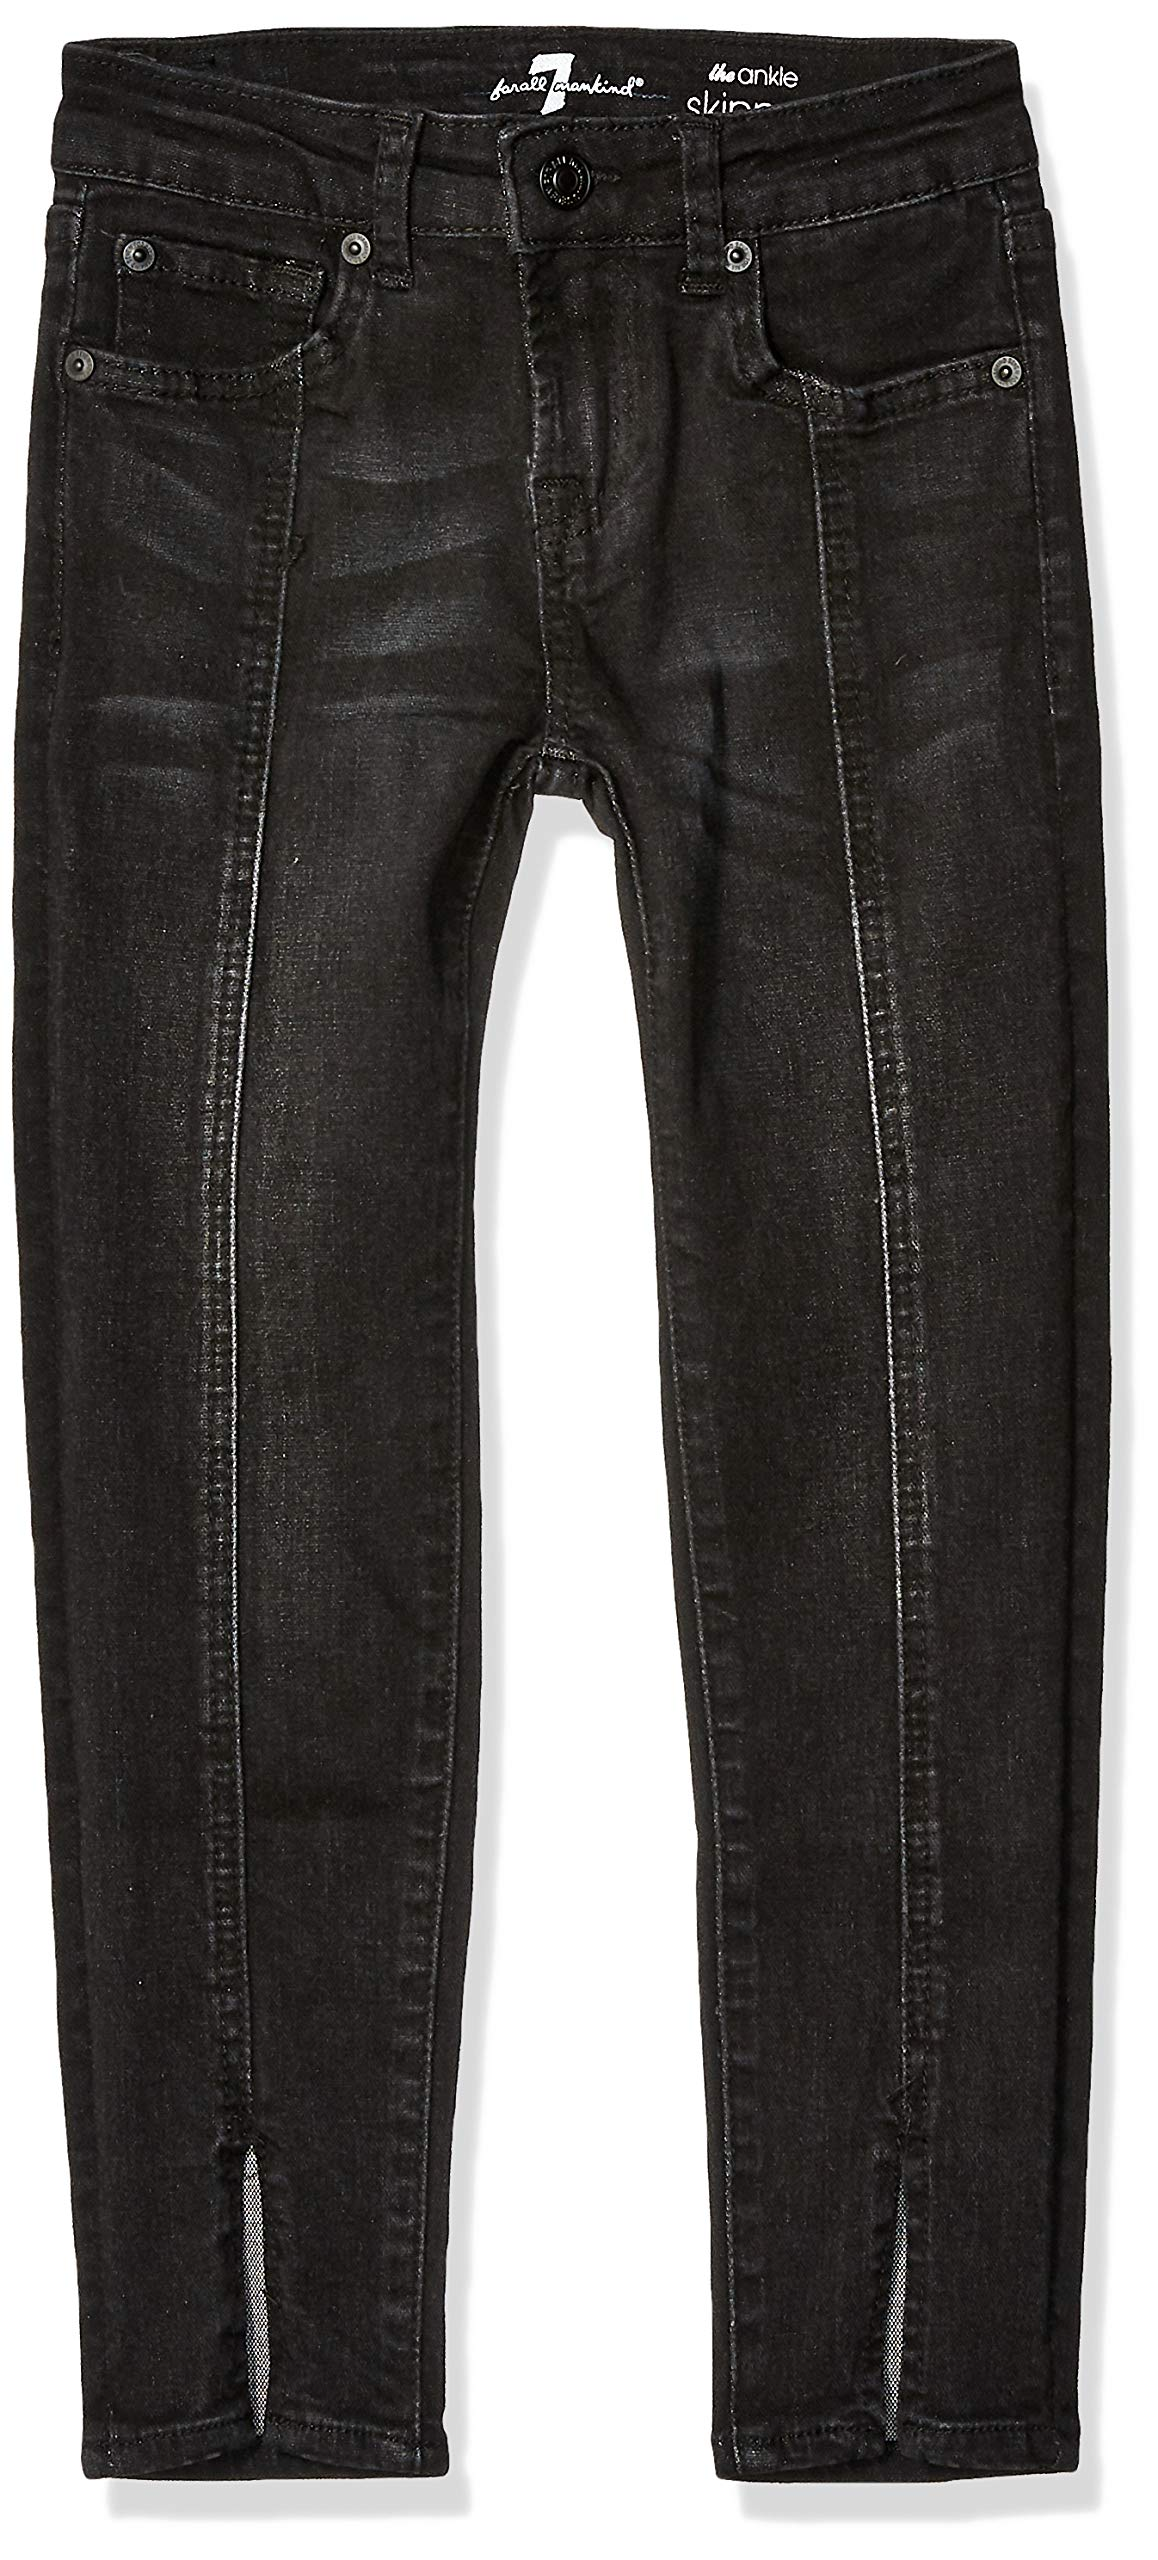 7 For All Mankind Kids Girls' Big Ankle Skinny Stretch Jean, Black Sands, 10 by 7 For All Mankind (Image #1)